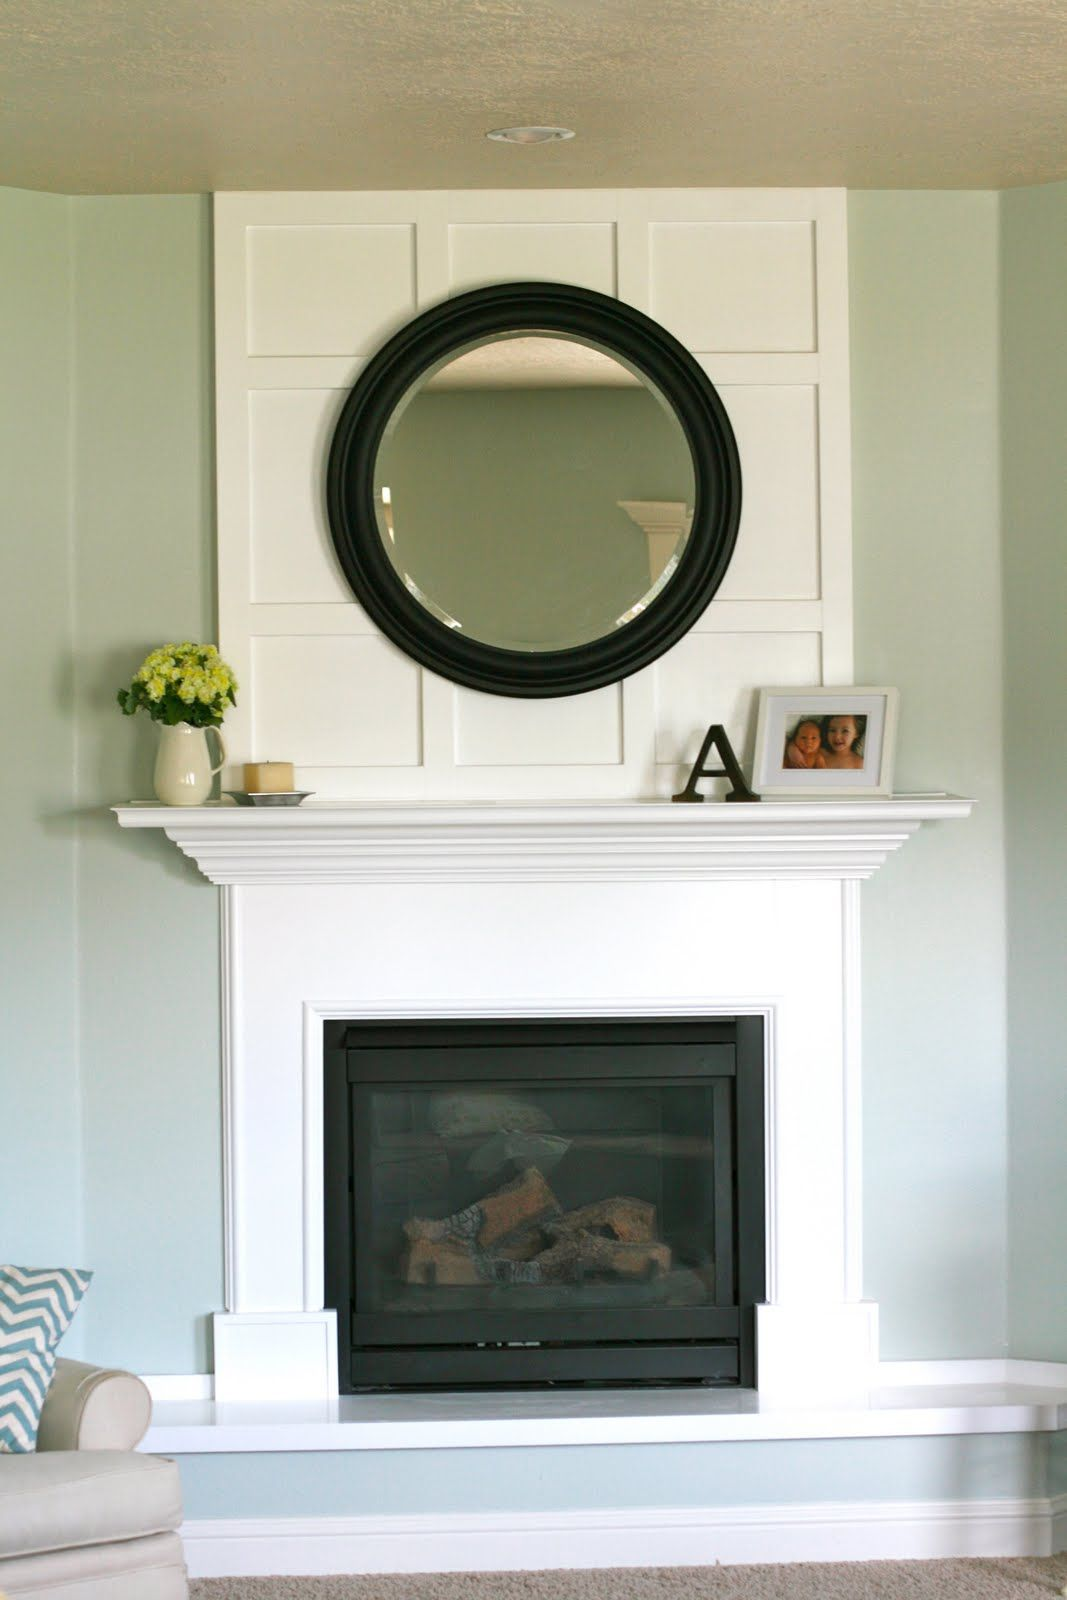 board u0026 batten to cover an awkward hole above a fireplace 6th